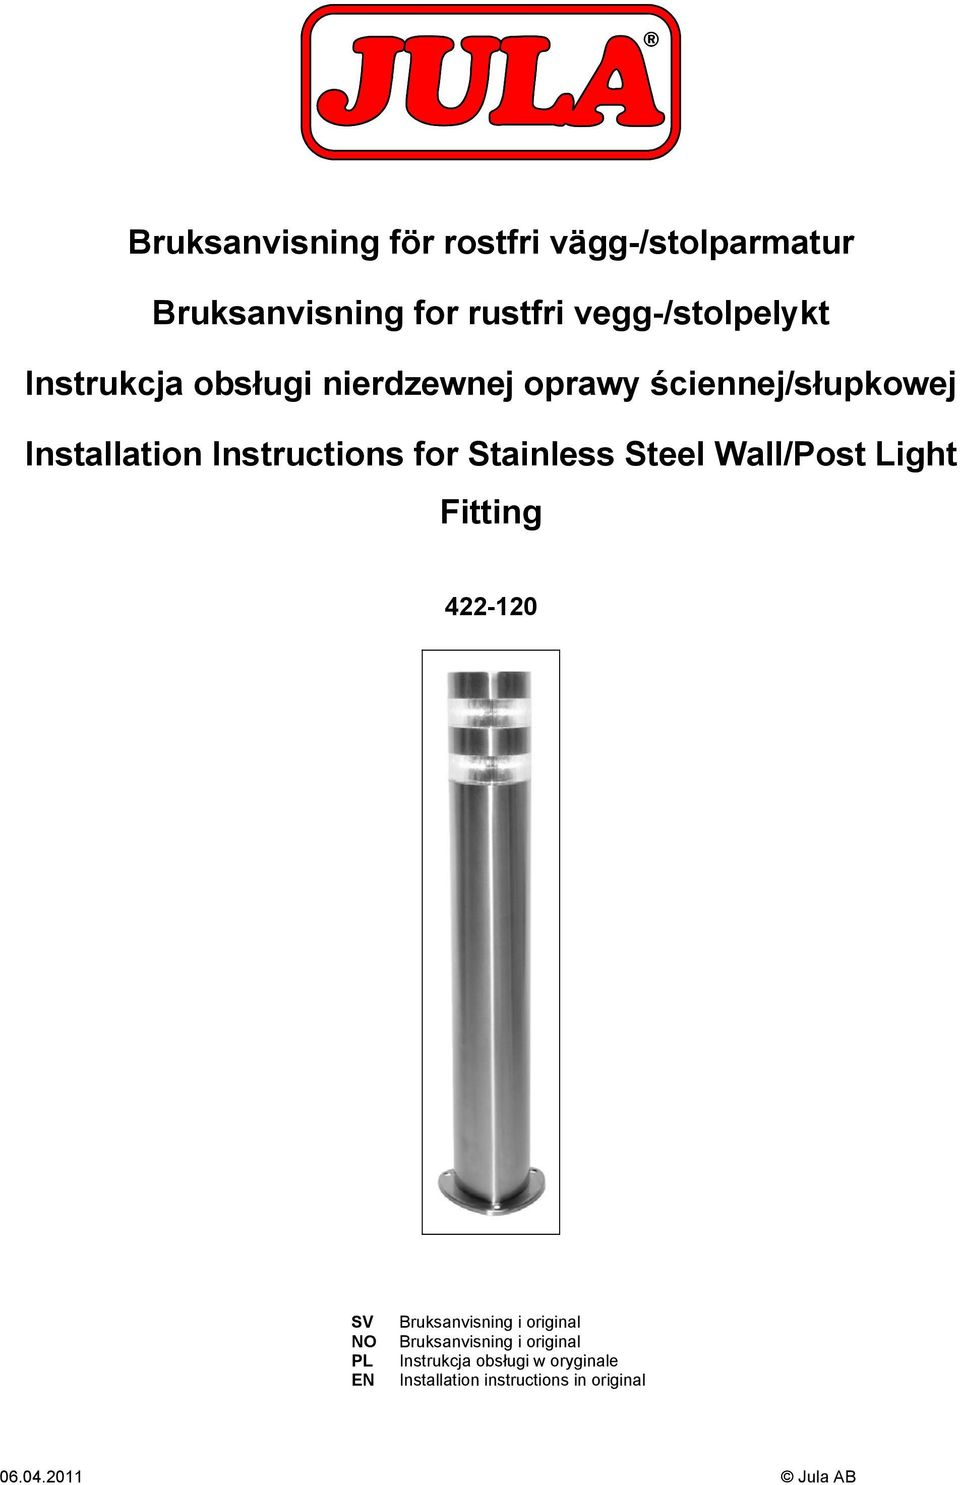 Stainless Steel Wall/Post Light Fitting 422-120 SV NO PL EN Bruksanvisning i original